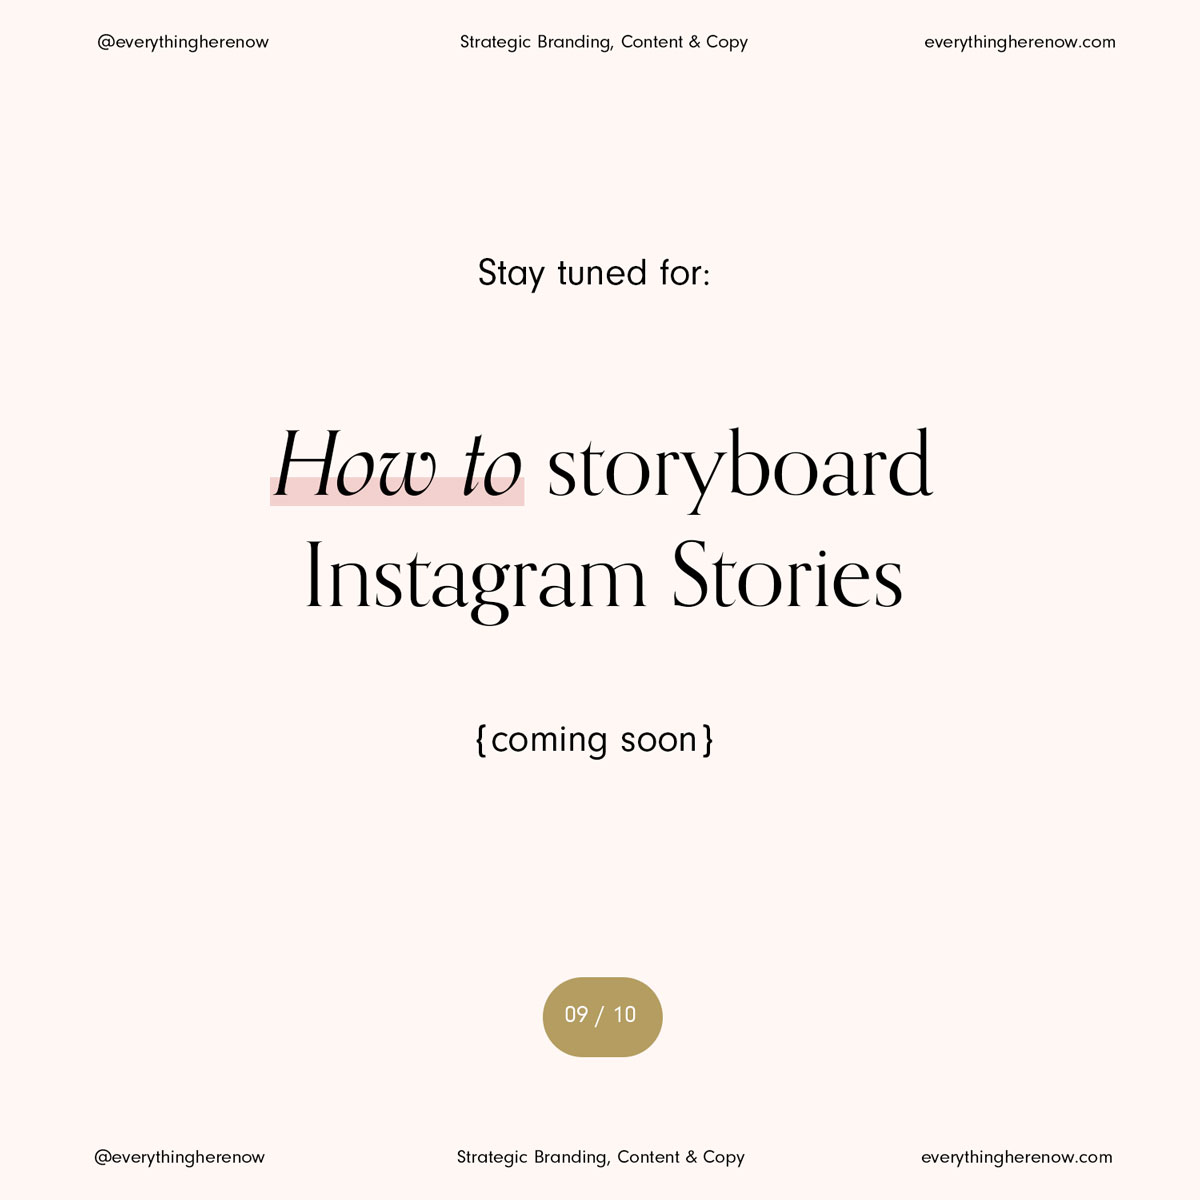 storyboarding-for-instagram-stories-what-it-is-and-when-to-use-it-by-everything-here-now-9